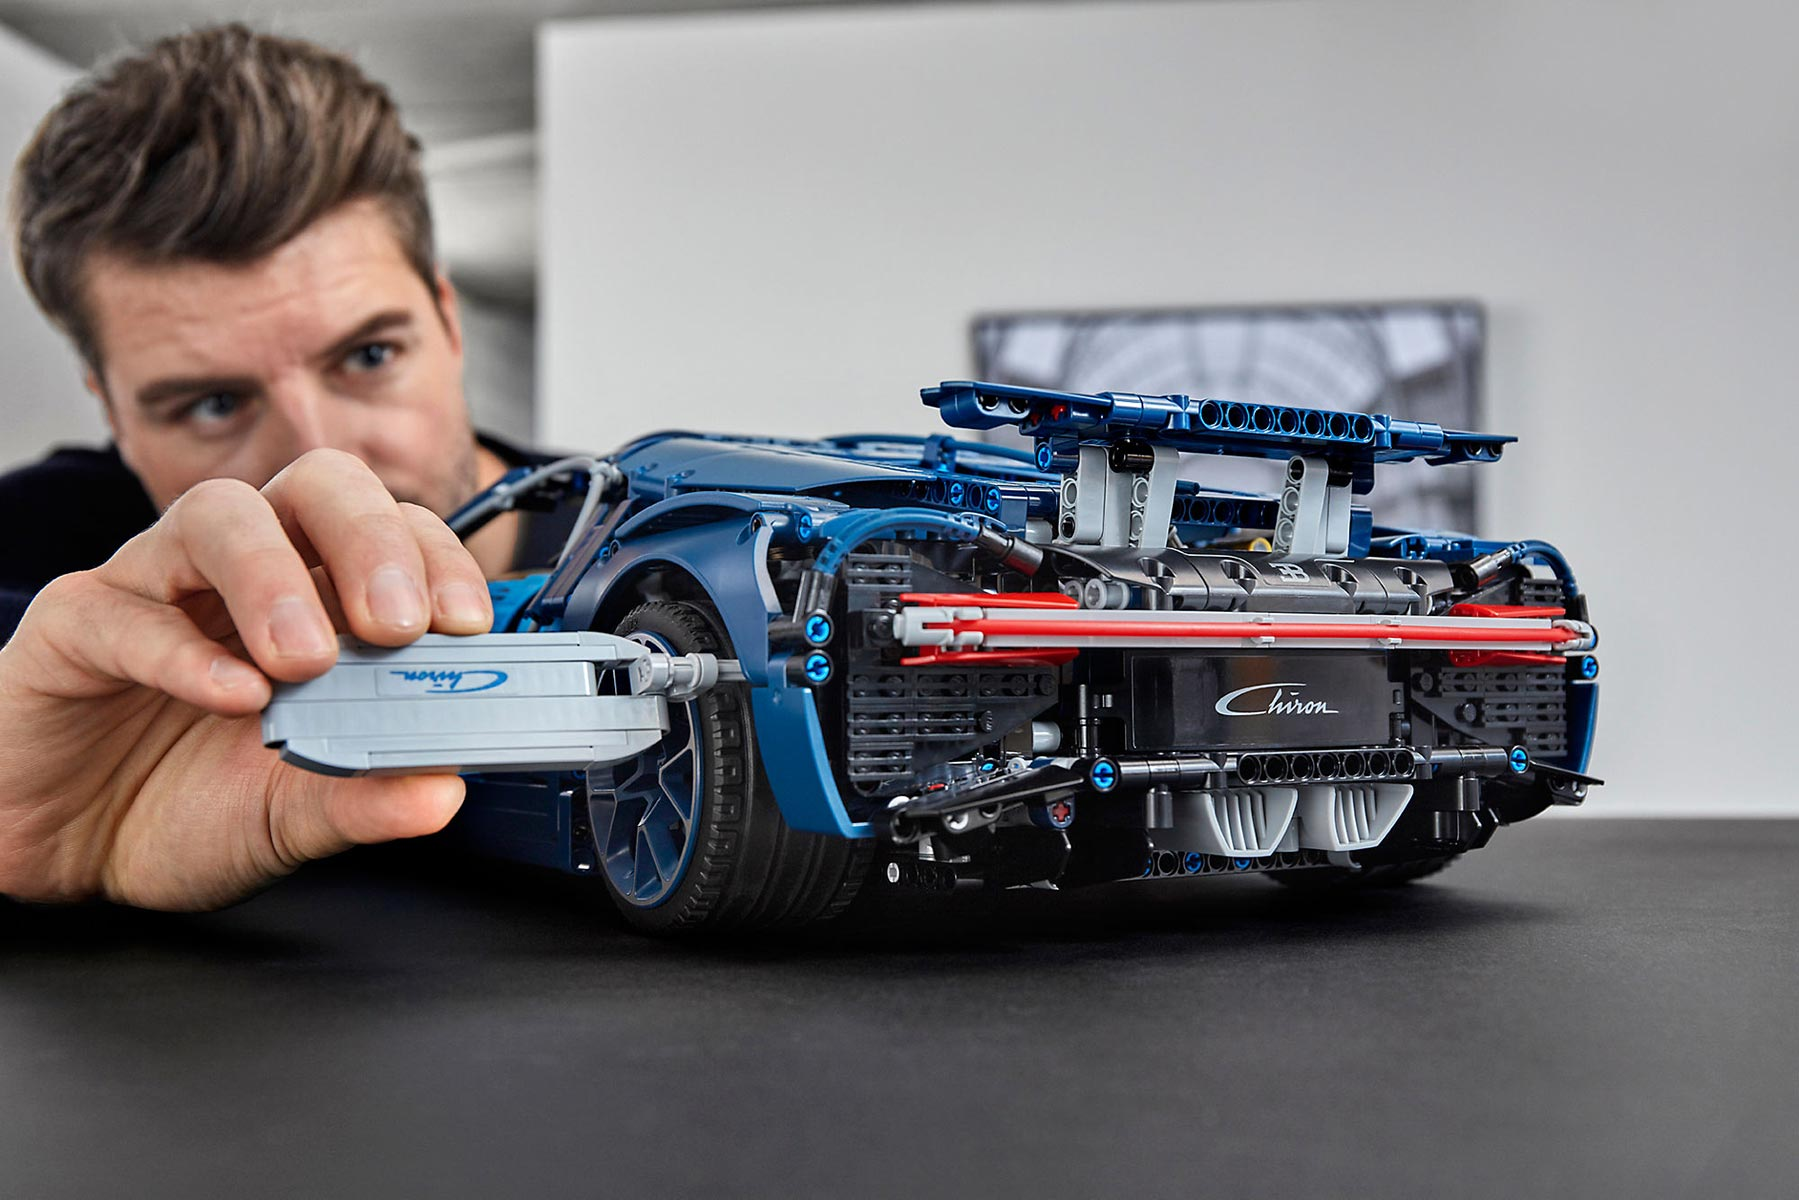 Lego Technic Bugatti Chiron Detailed Replica